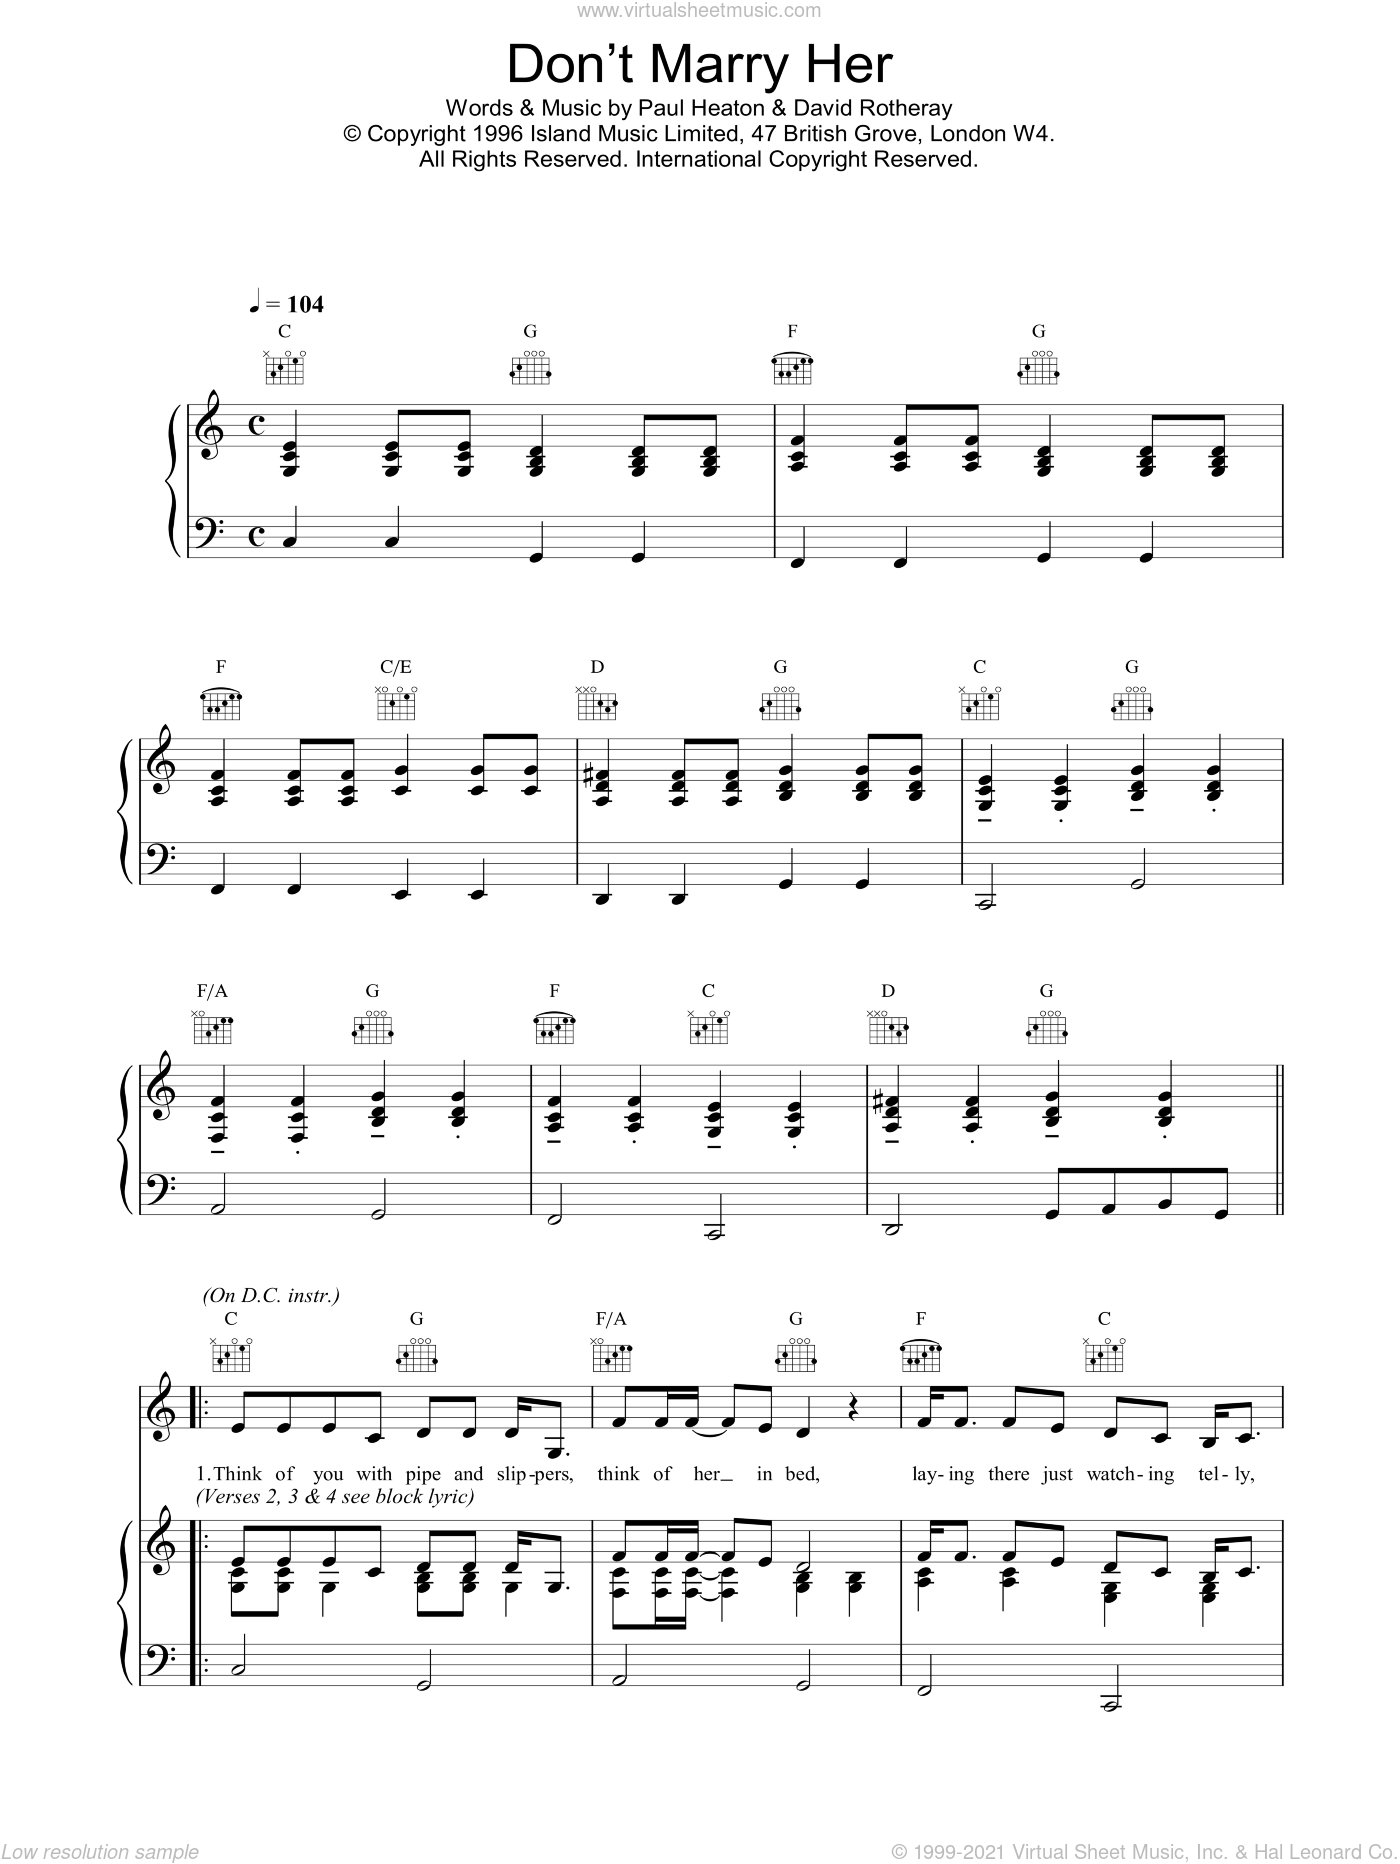 Don't Marry Her sheet music for voice, piano or guitar by The Beautiful South, intermediate skill level